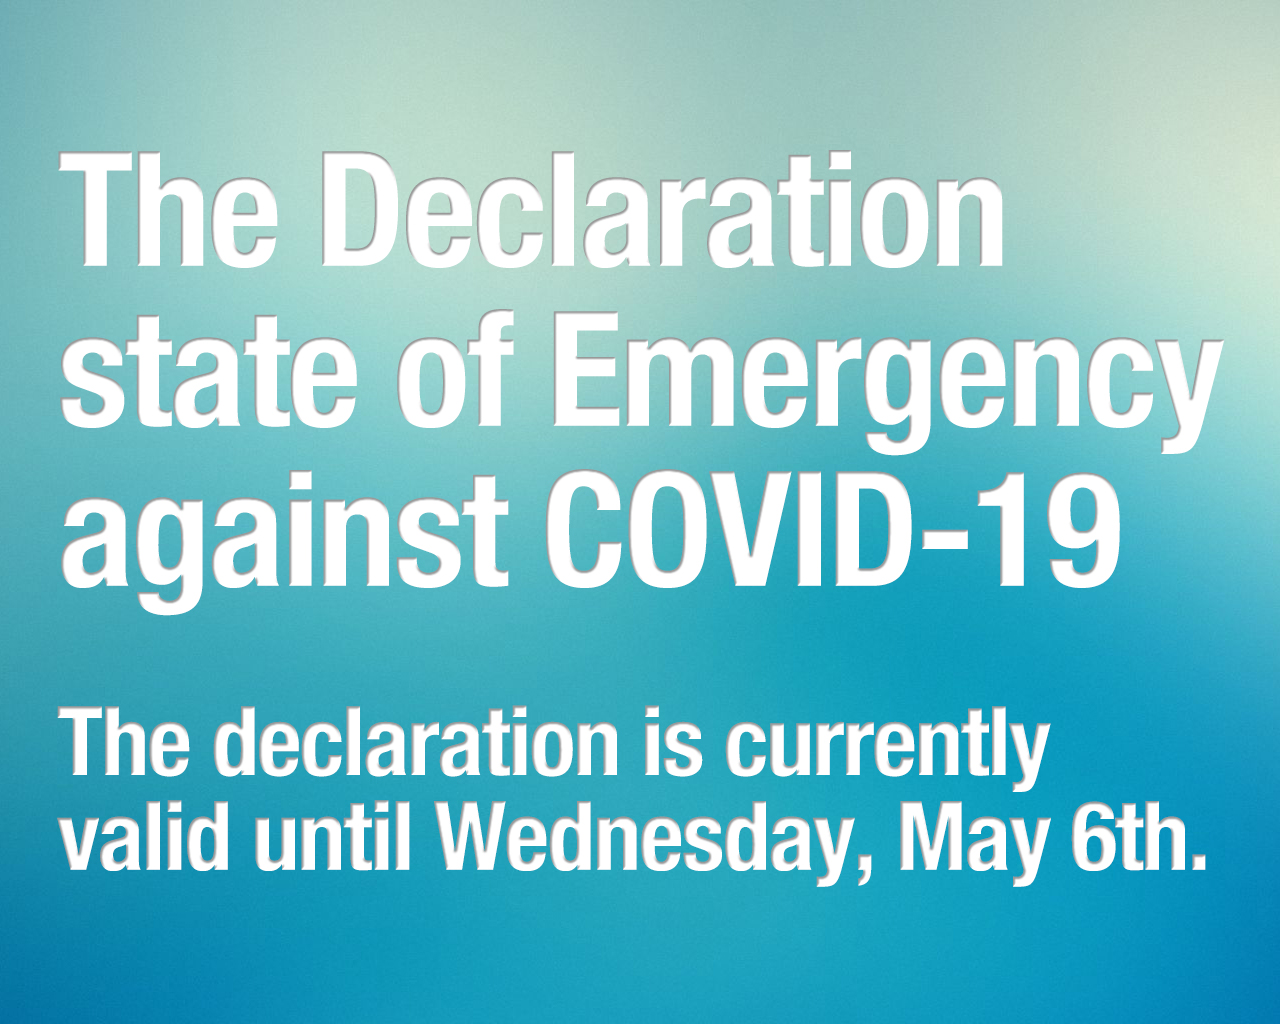 The Japanese Gov. the Declaration state of Emergency against COVID-19